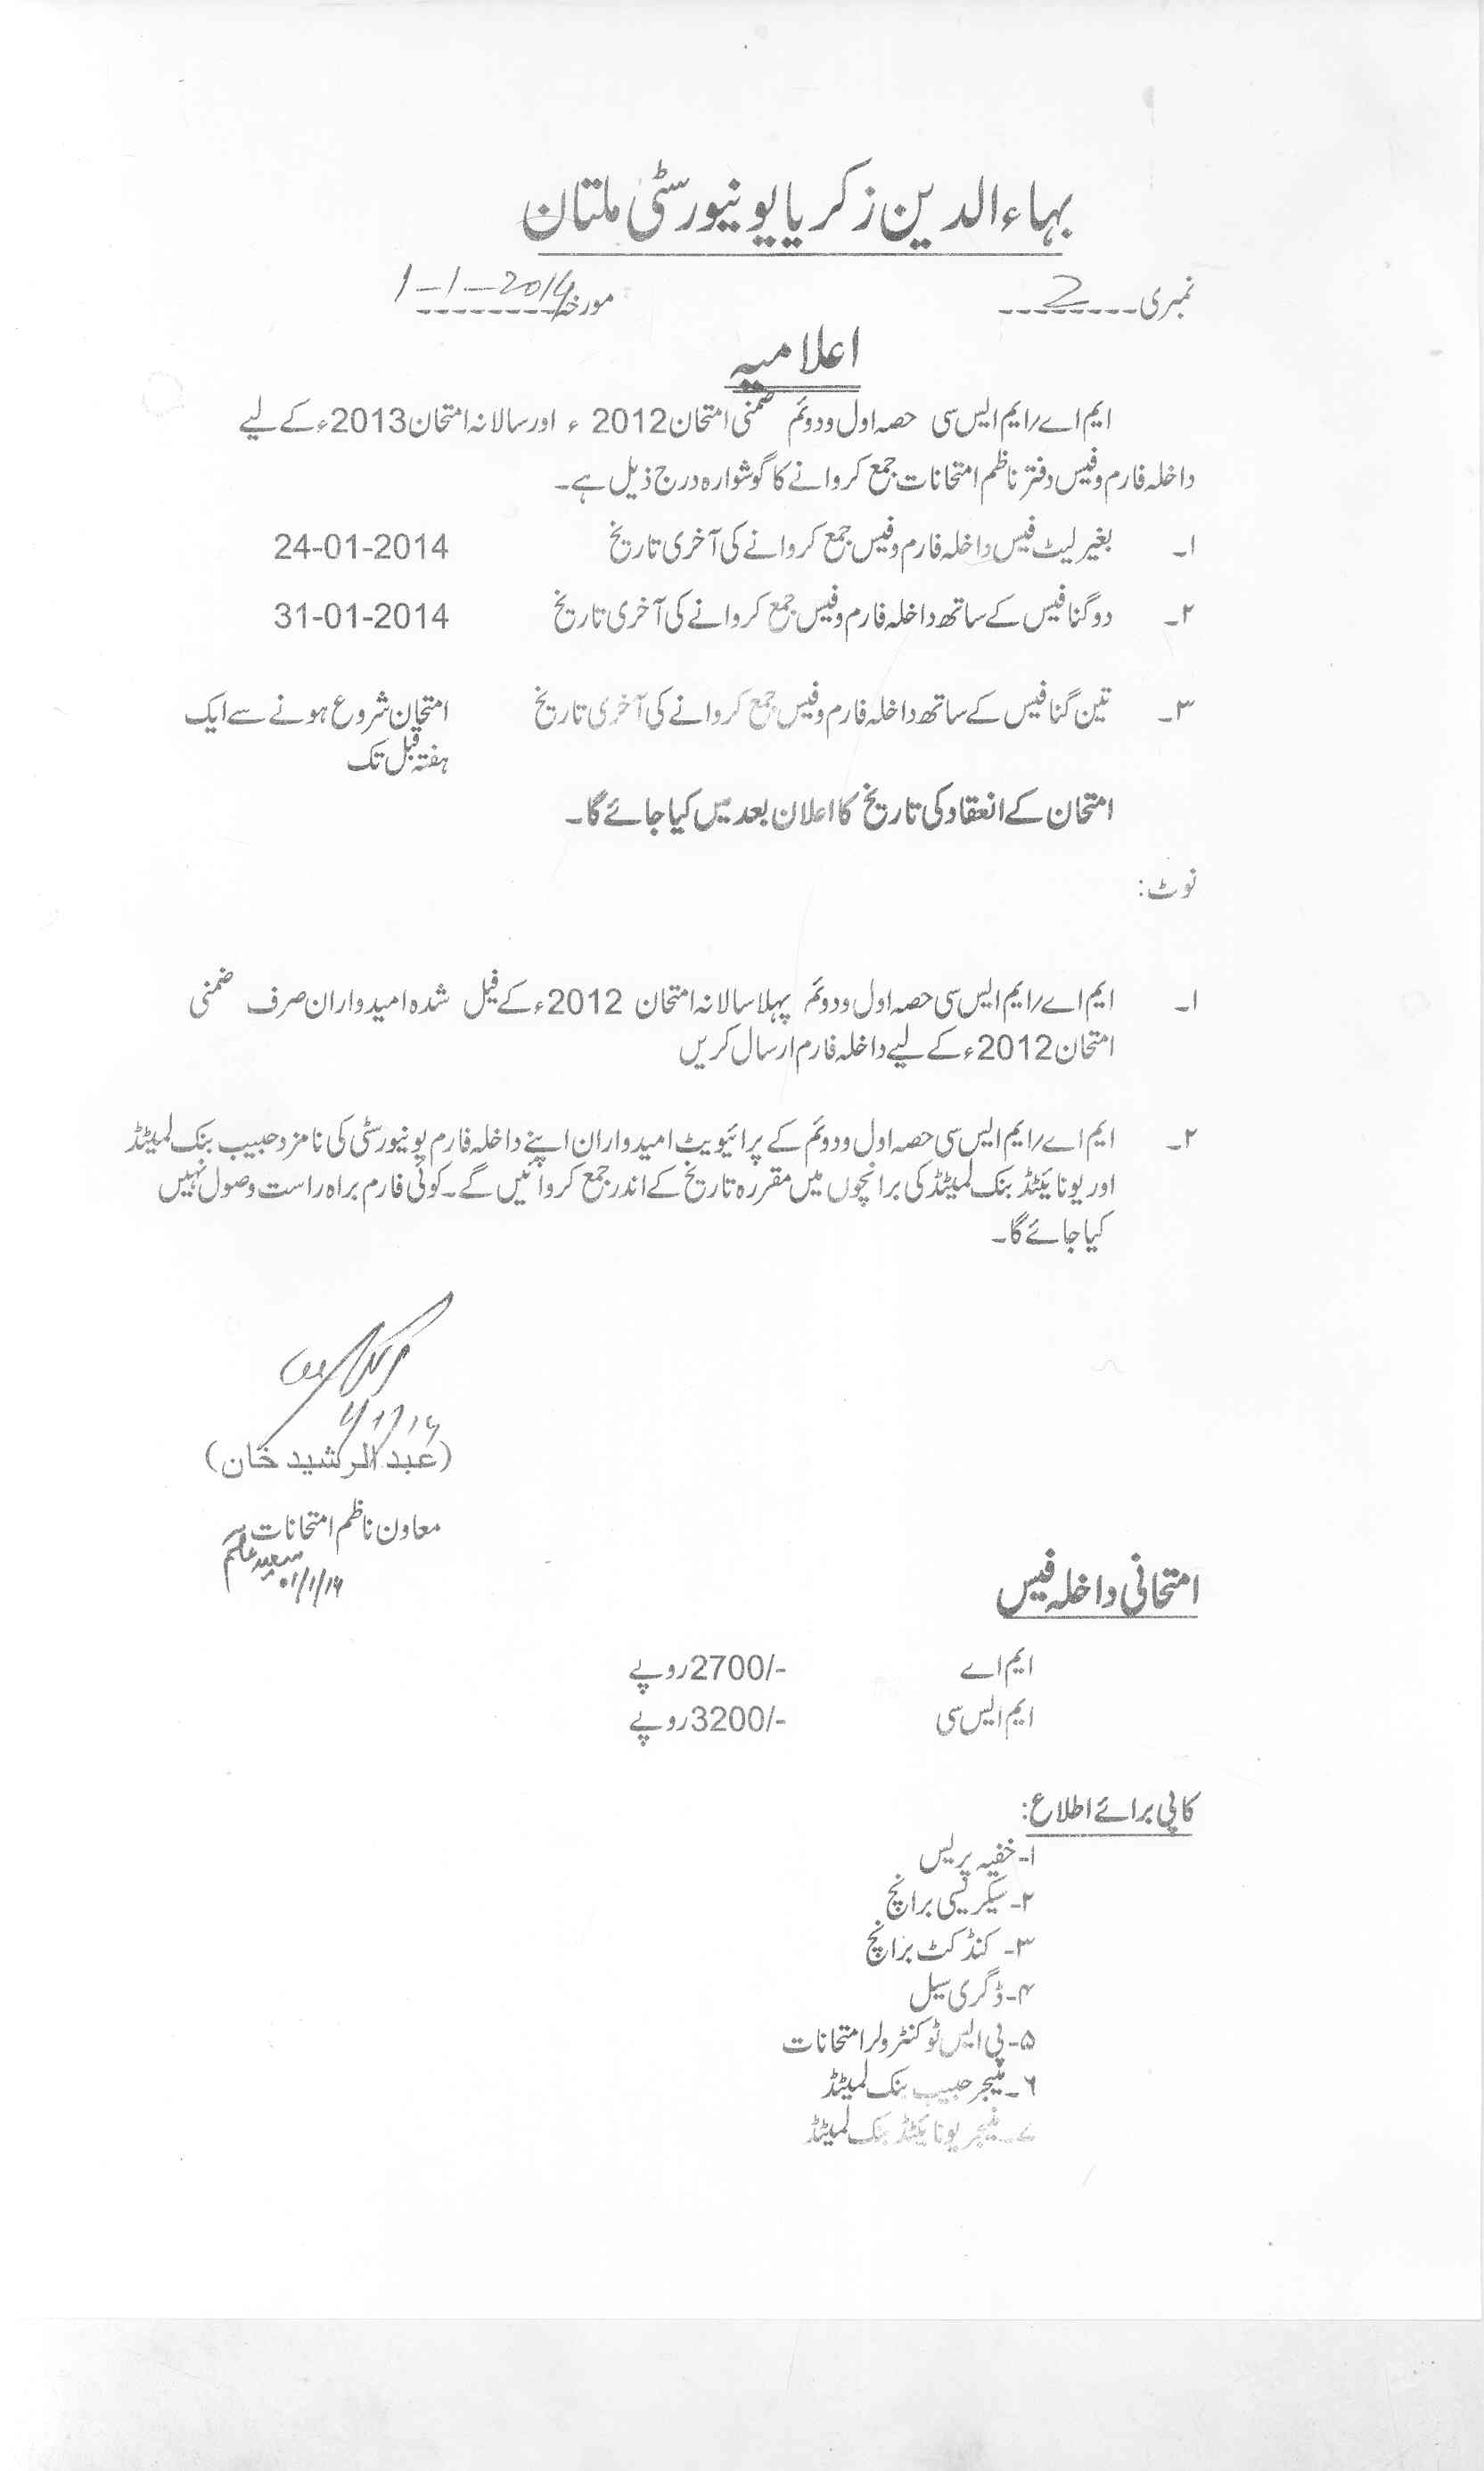 BZU Multan Ma/MSc Exams Form Submission Schedule 2013